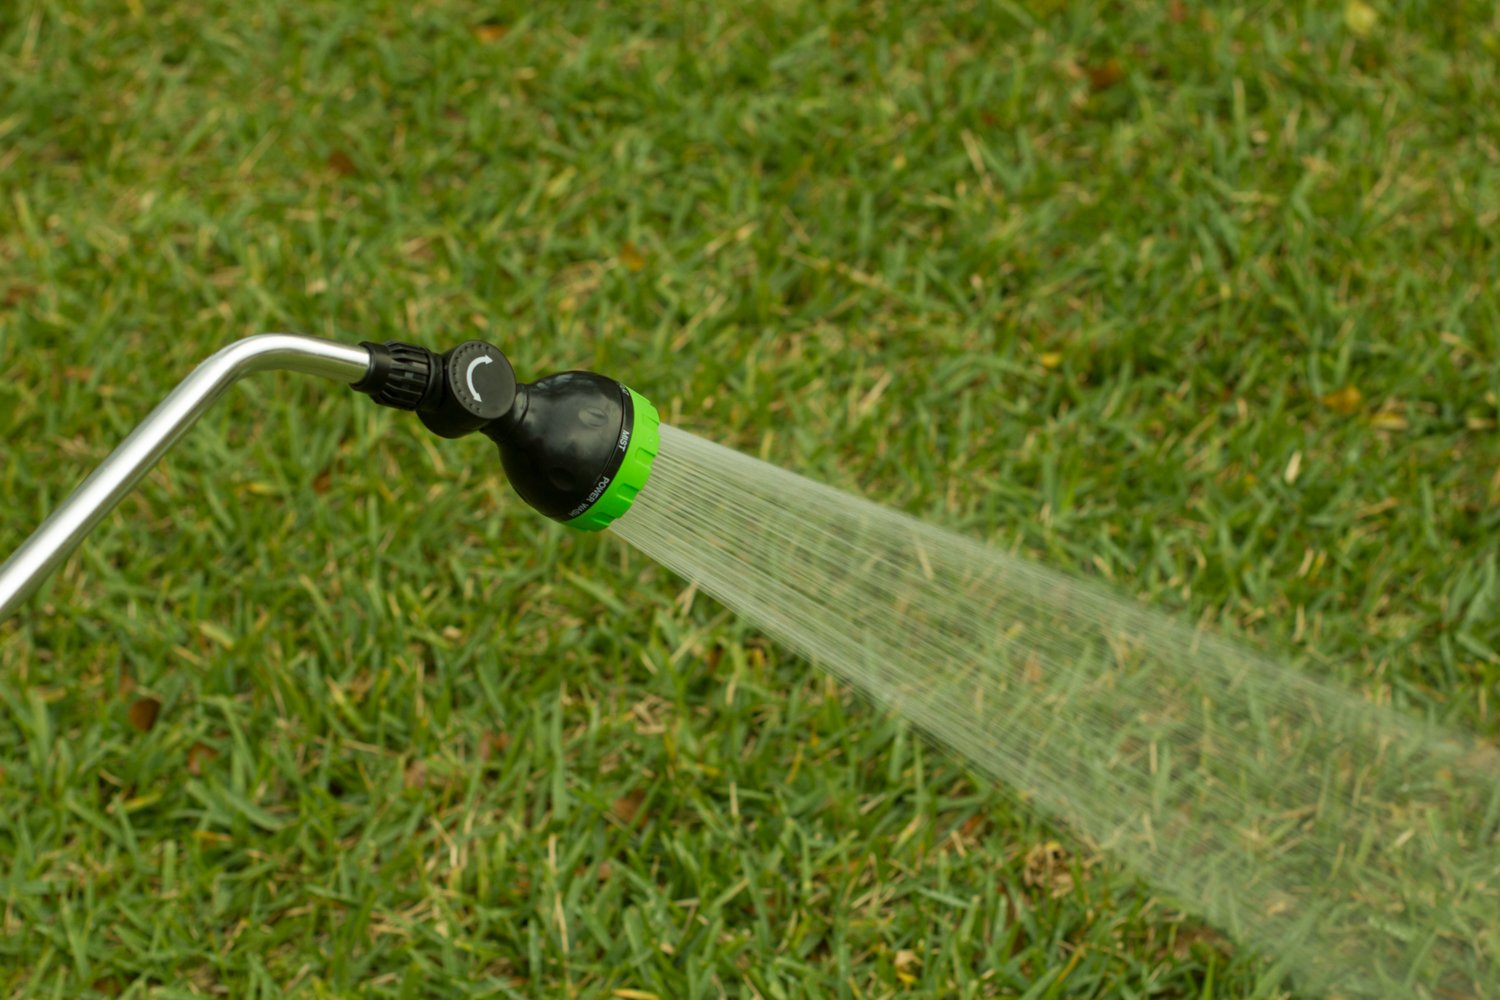 Garden Spray Watering Wand for Hose with 7 Nozzle Patterns and Easy Shut Off Valve for Lawns, Gardens, Baskets, Flowers, Shrubs, and More, 33 Inch Long Handle, by Garden Products USA by Garden Products USA (Image #4)